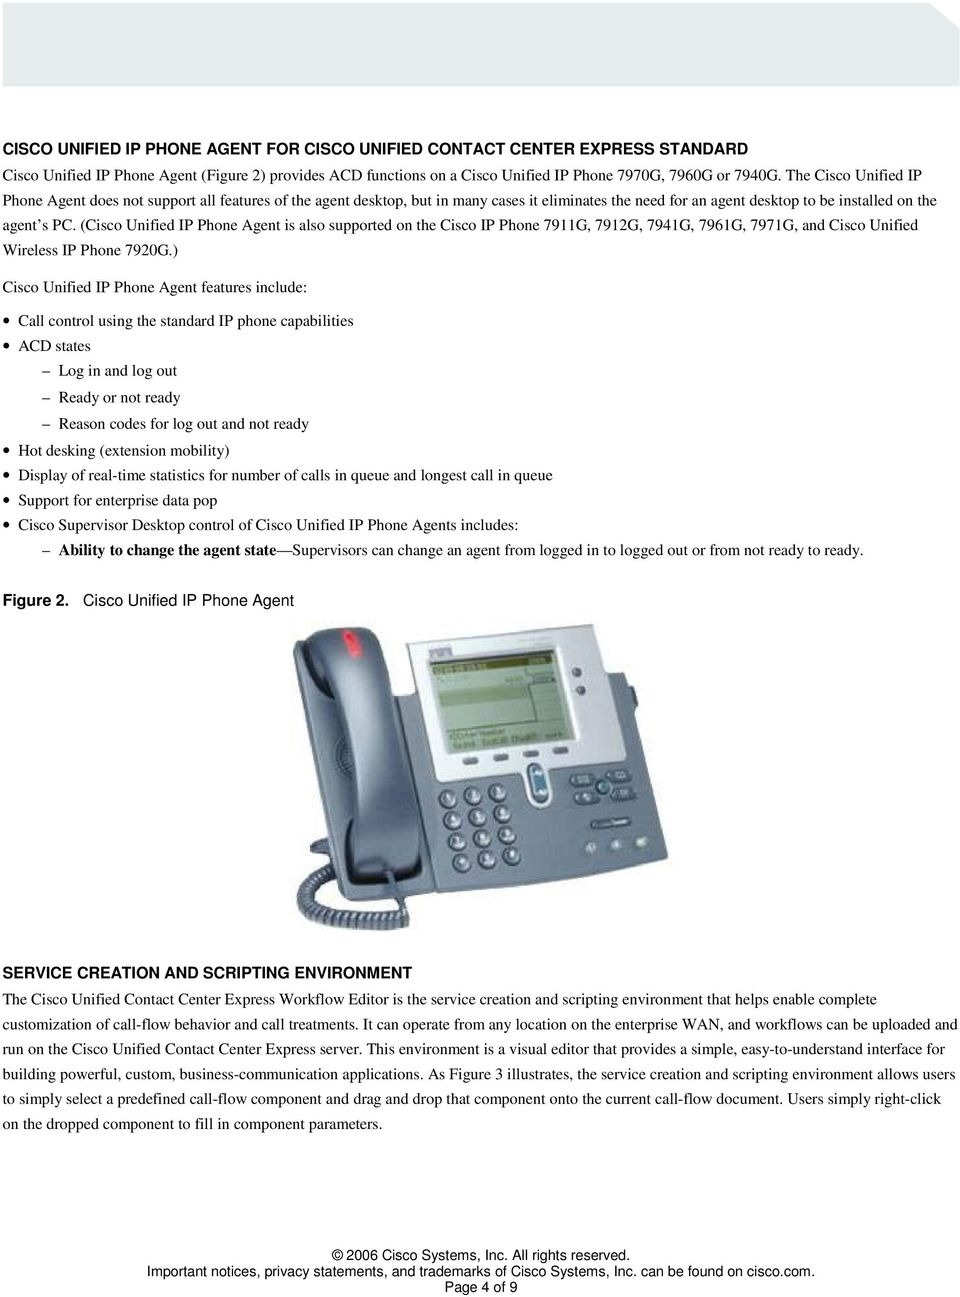 (Cisco Unified IP Phone Agent is also supported on the Cisco IP Phone 7911G, 7912G, 7941G, 7961G, 7971G, and Cisco Unified Wireless IP Phone 7920G.